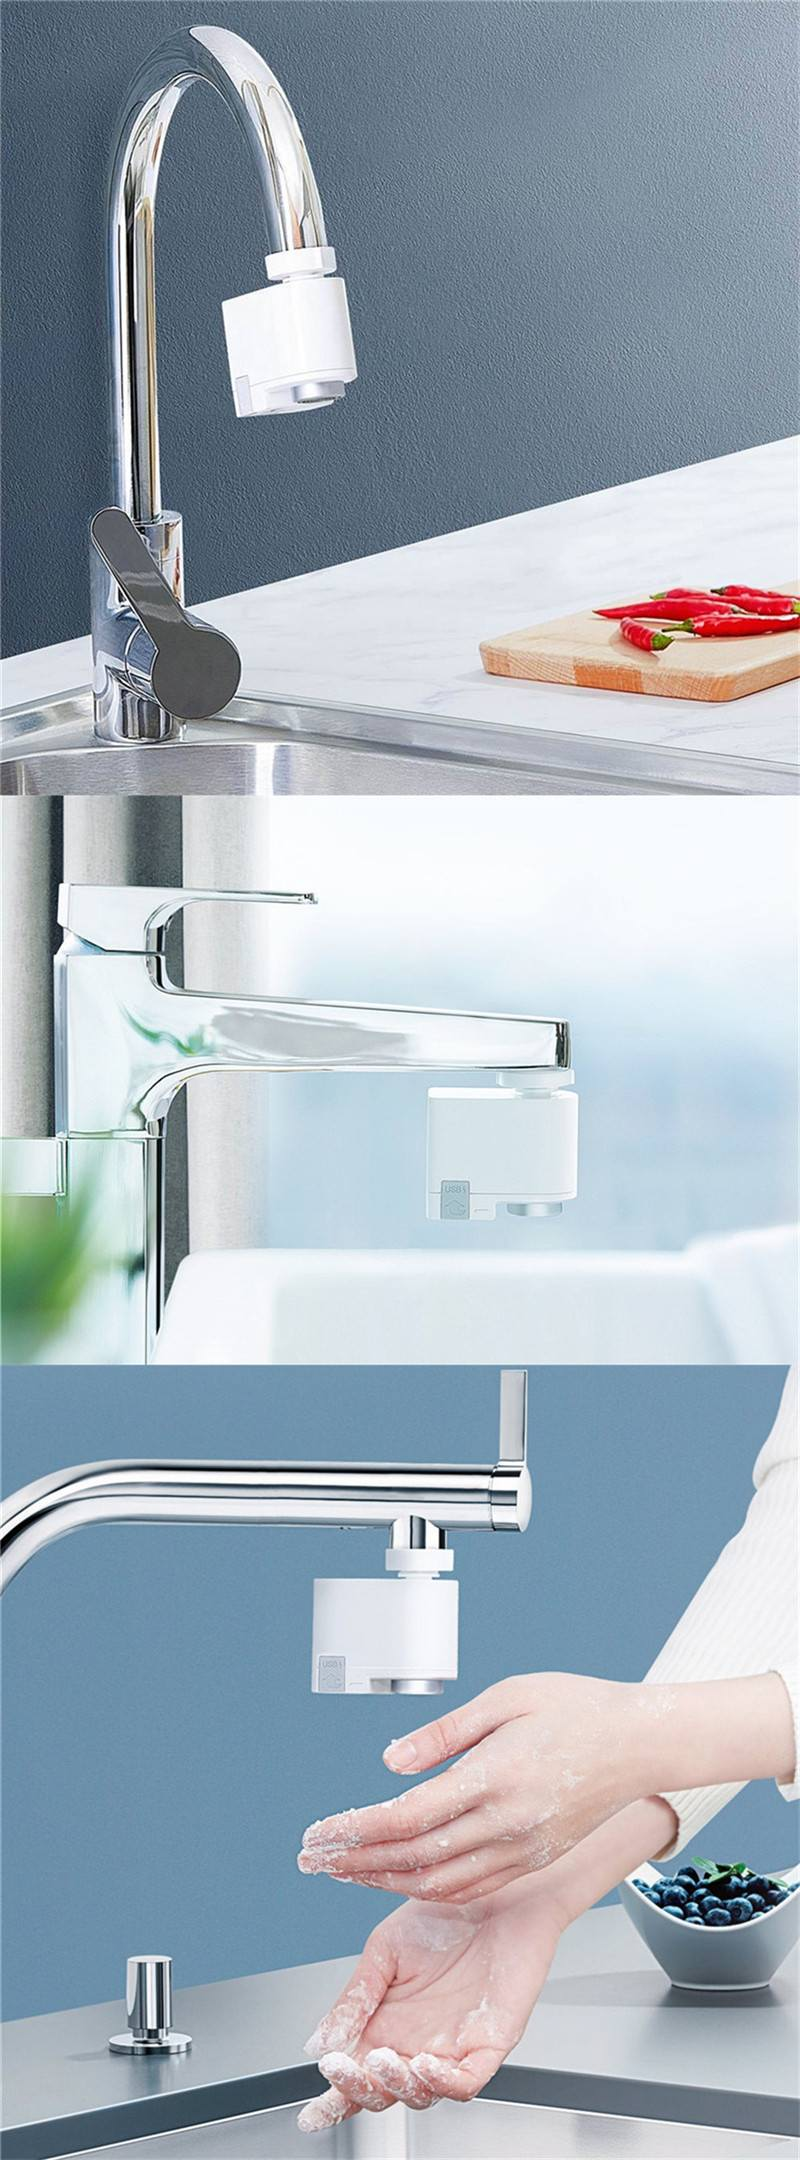 Xiaomi Mijia Touchless Water Saving Device with Automatic Sense